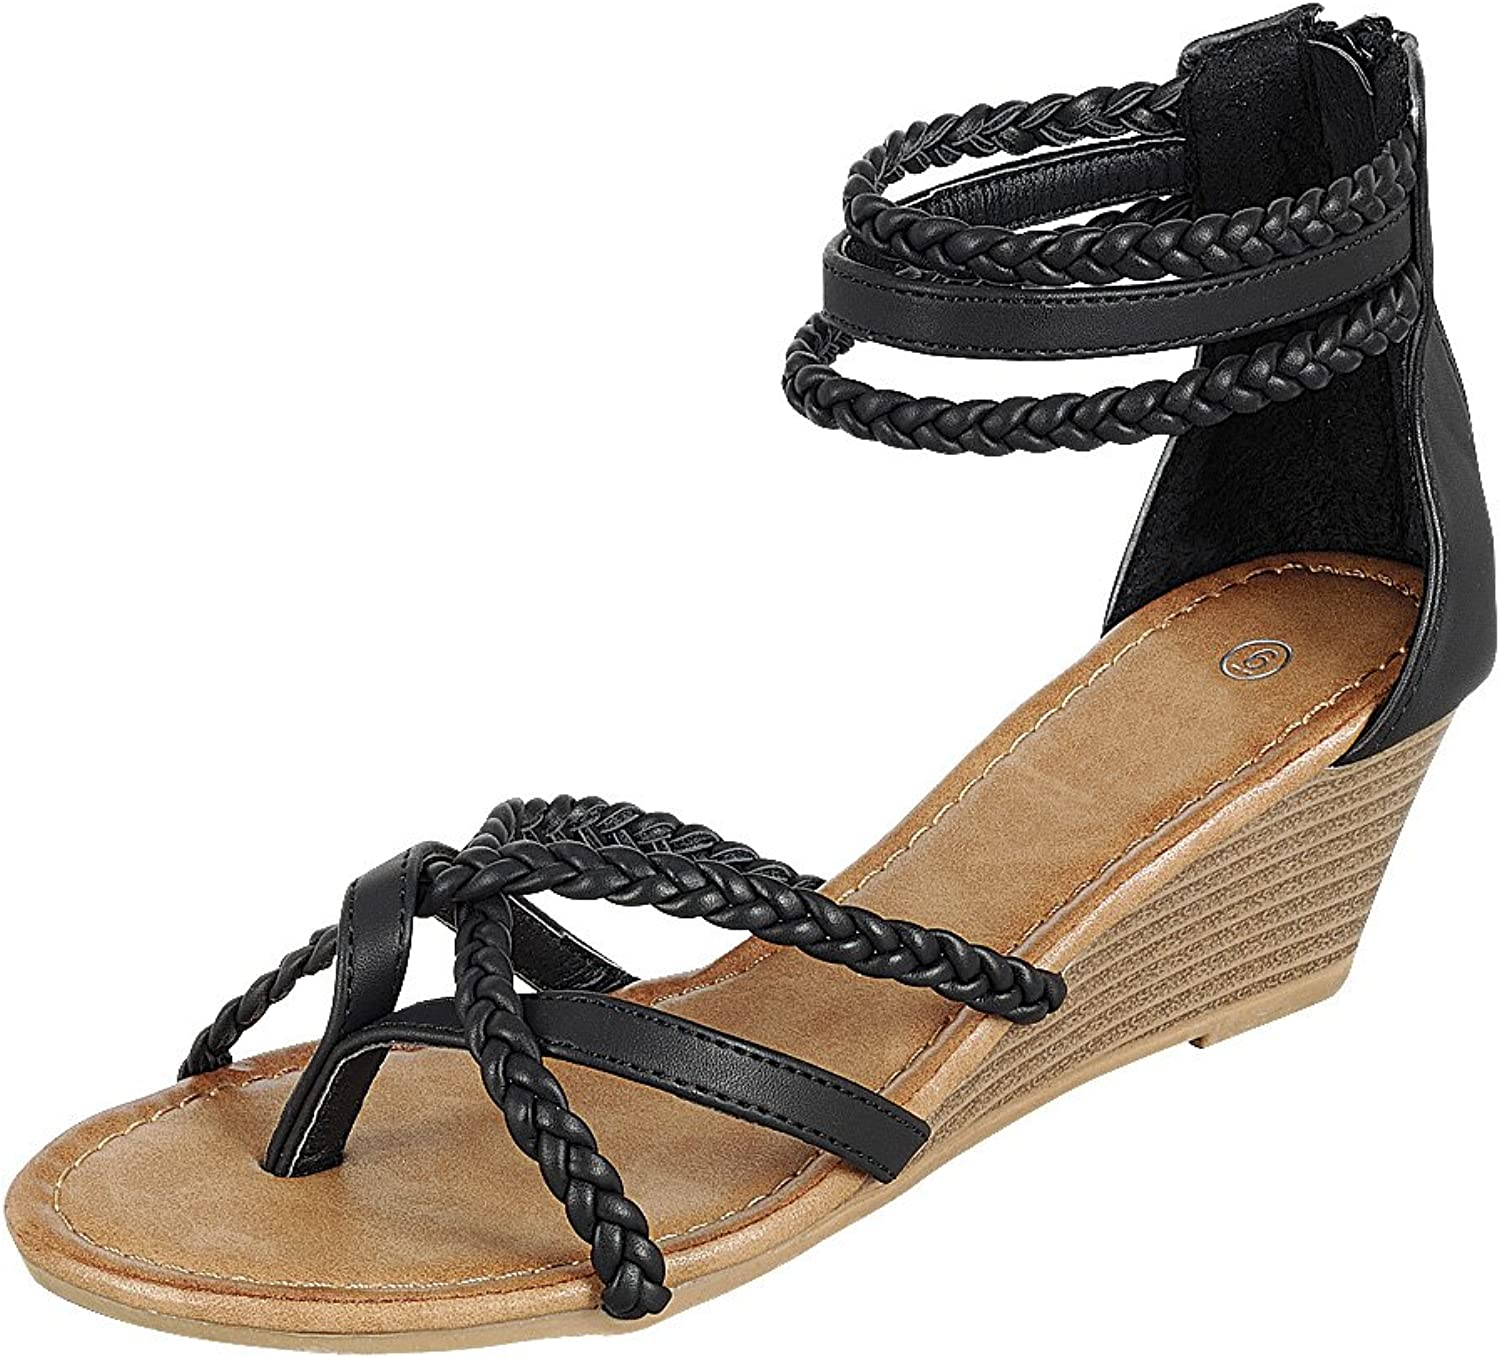 Cambridge Select Women's Back Zip Strappy Crisscross Braided Ankle Thong Toe Wedge Sandal